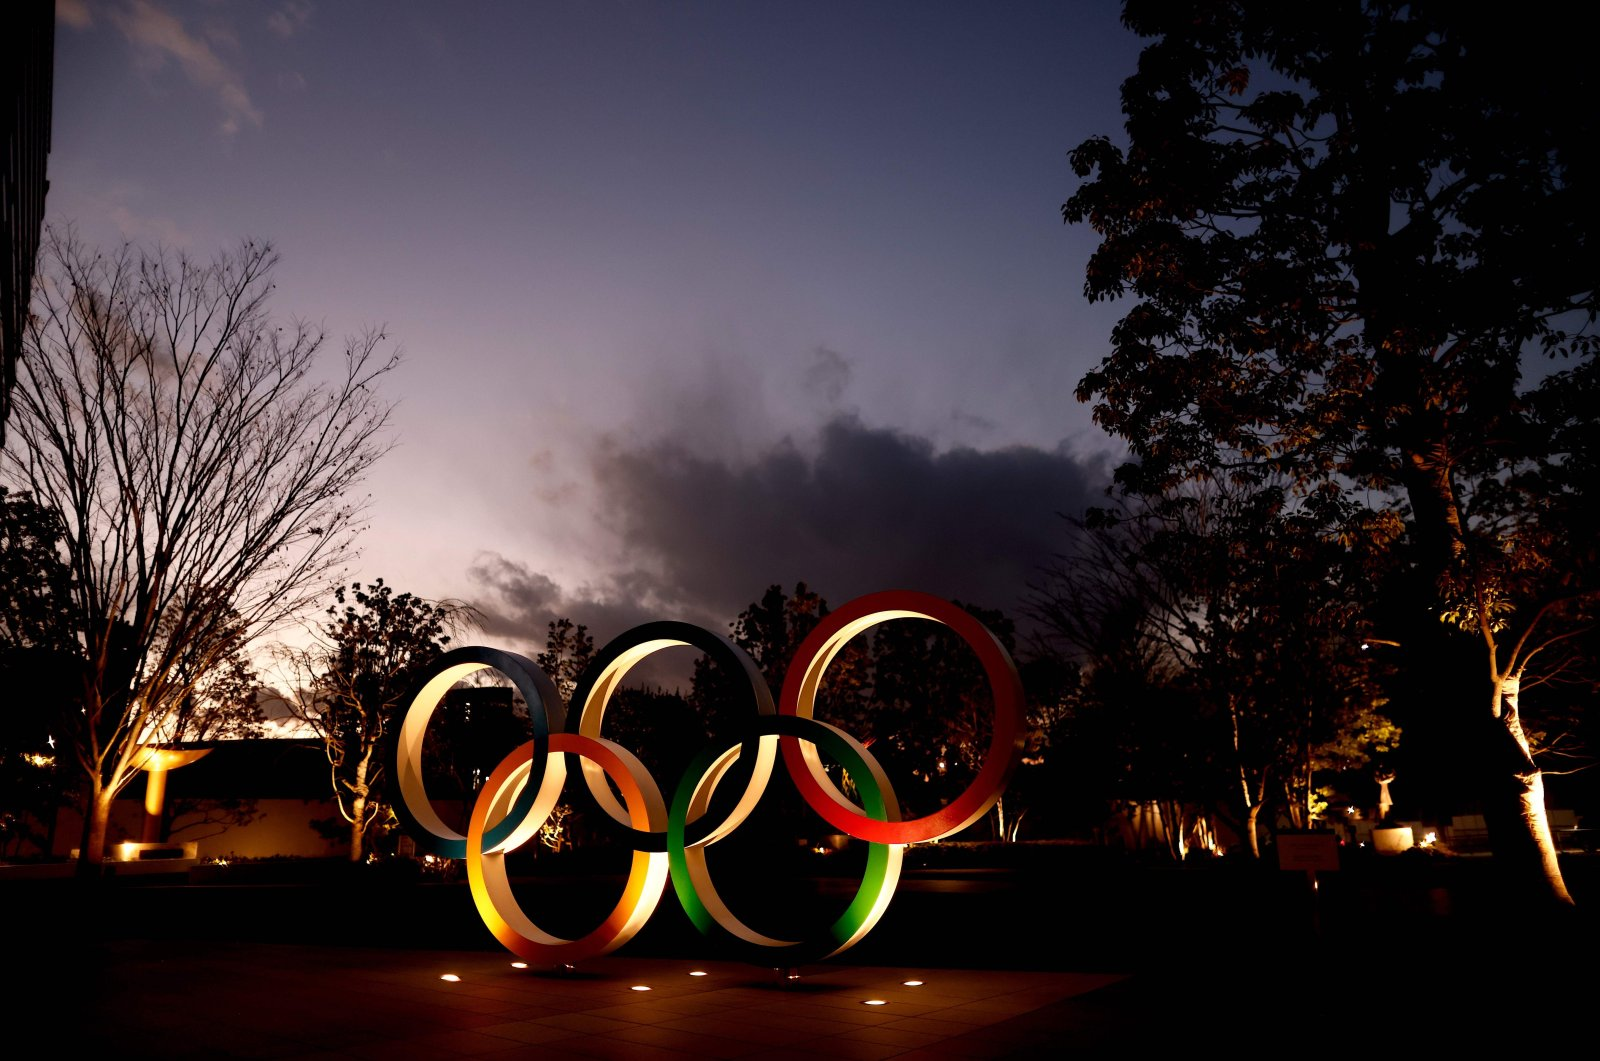 Olympic Rings are seen near the National Stadium, the main venue for the Tokyo 2020 Olympic and Paralympic Games, in Tokyo, Japan, Jan. 8, 2021. (AFP Photo)